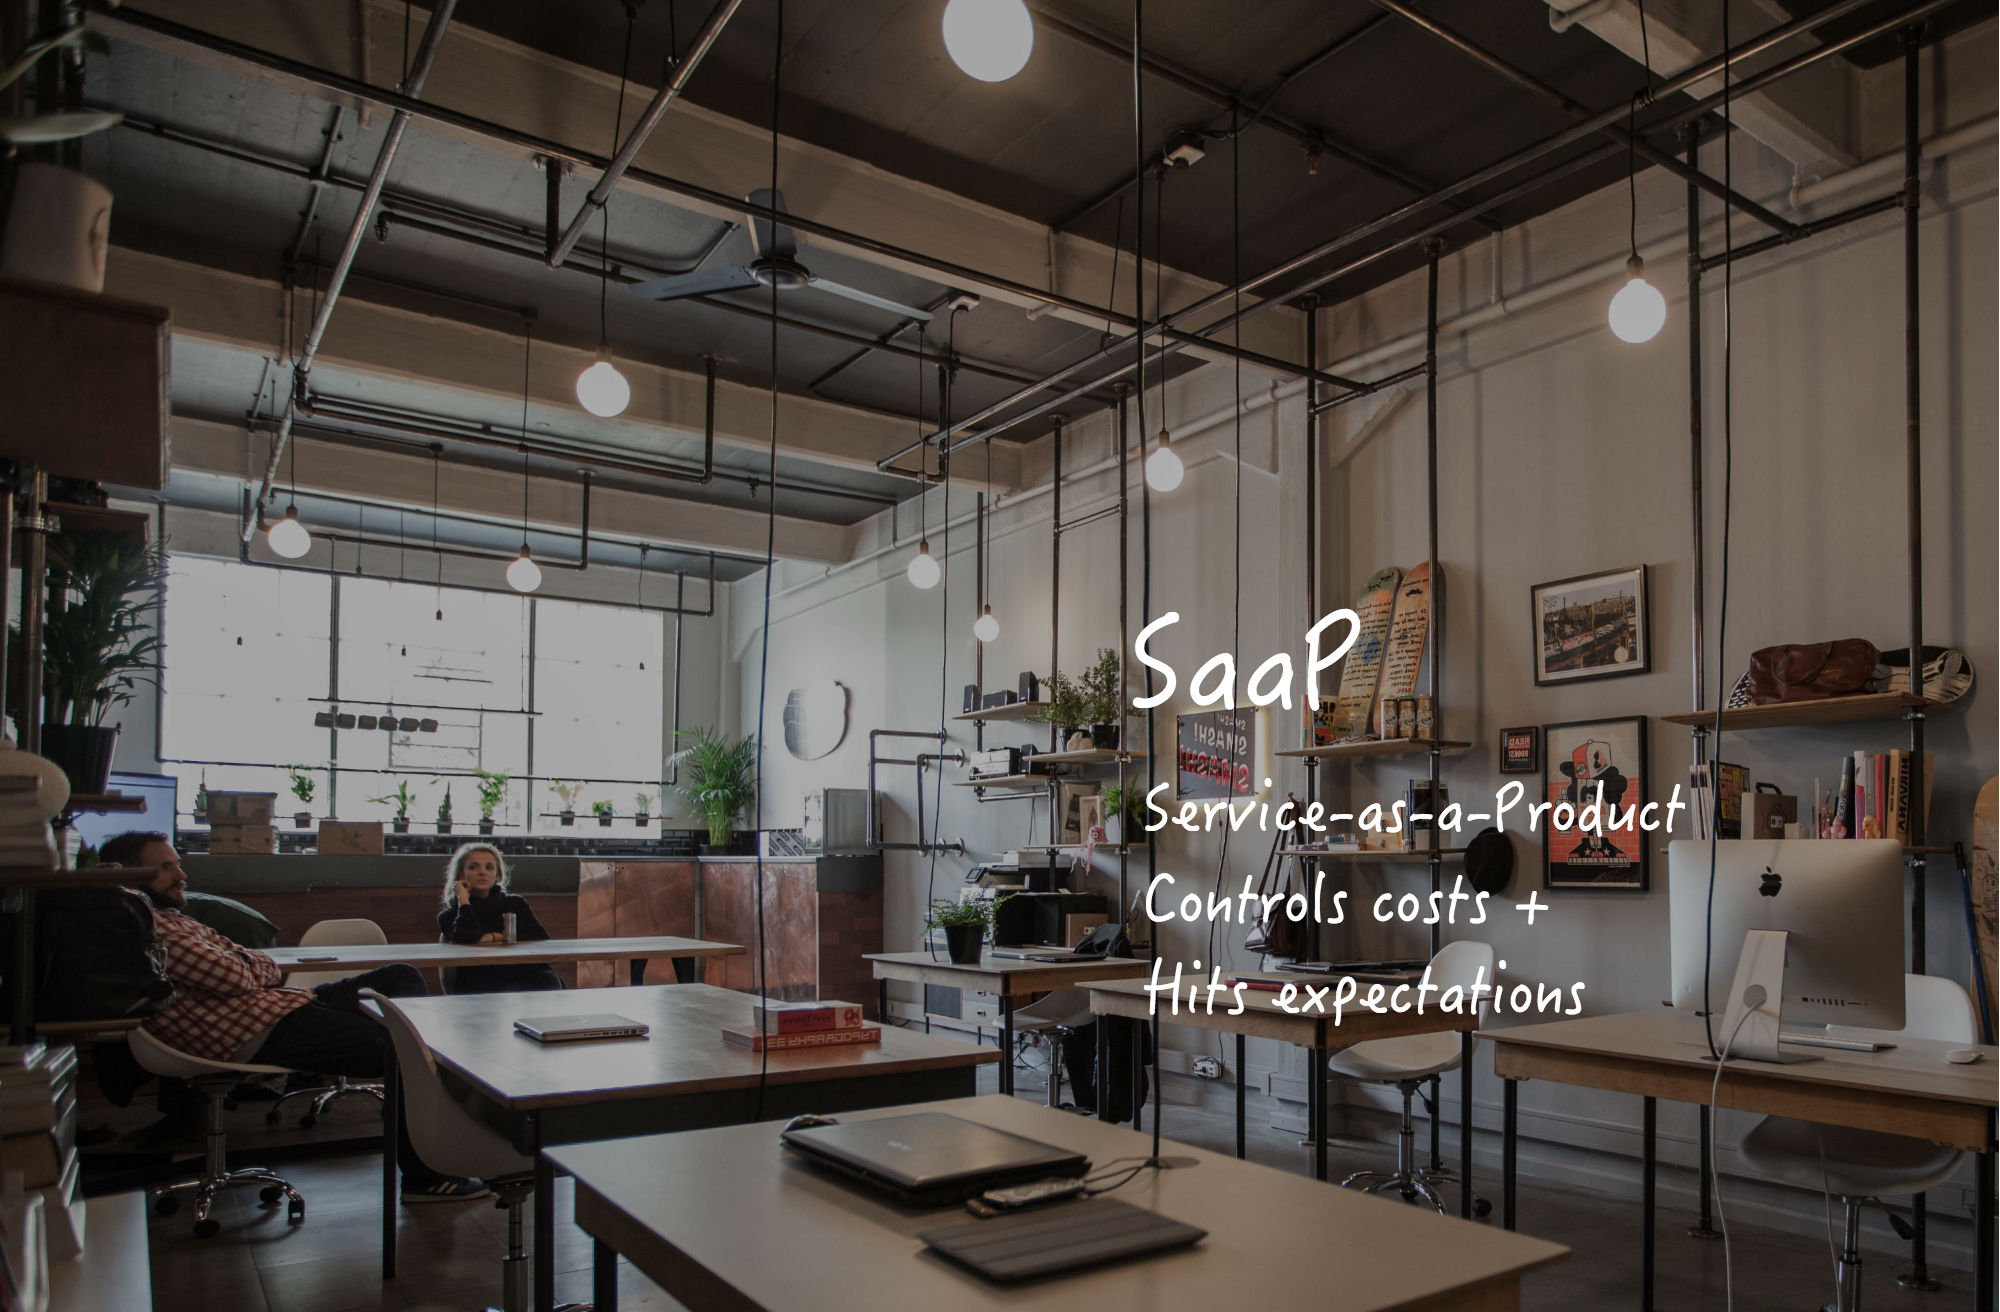 Hen House offers consulting services-as-a-product (SaaP) similar to buying any product or app. Our packages give you the consulting service price and deliverables before you even contact us.